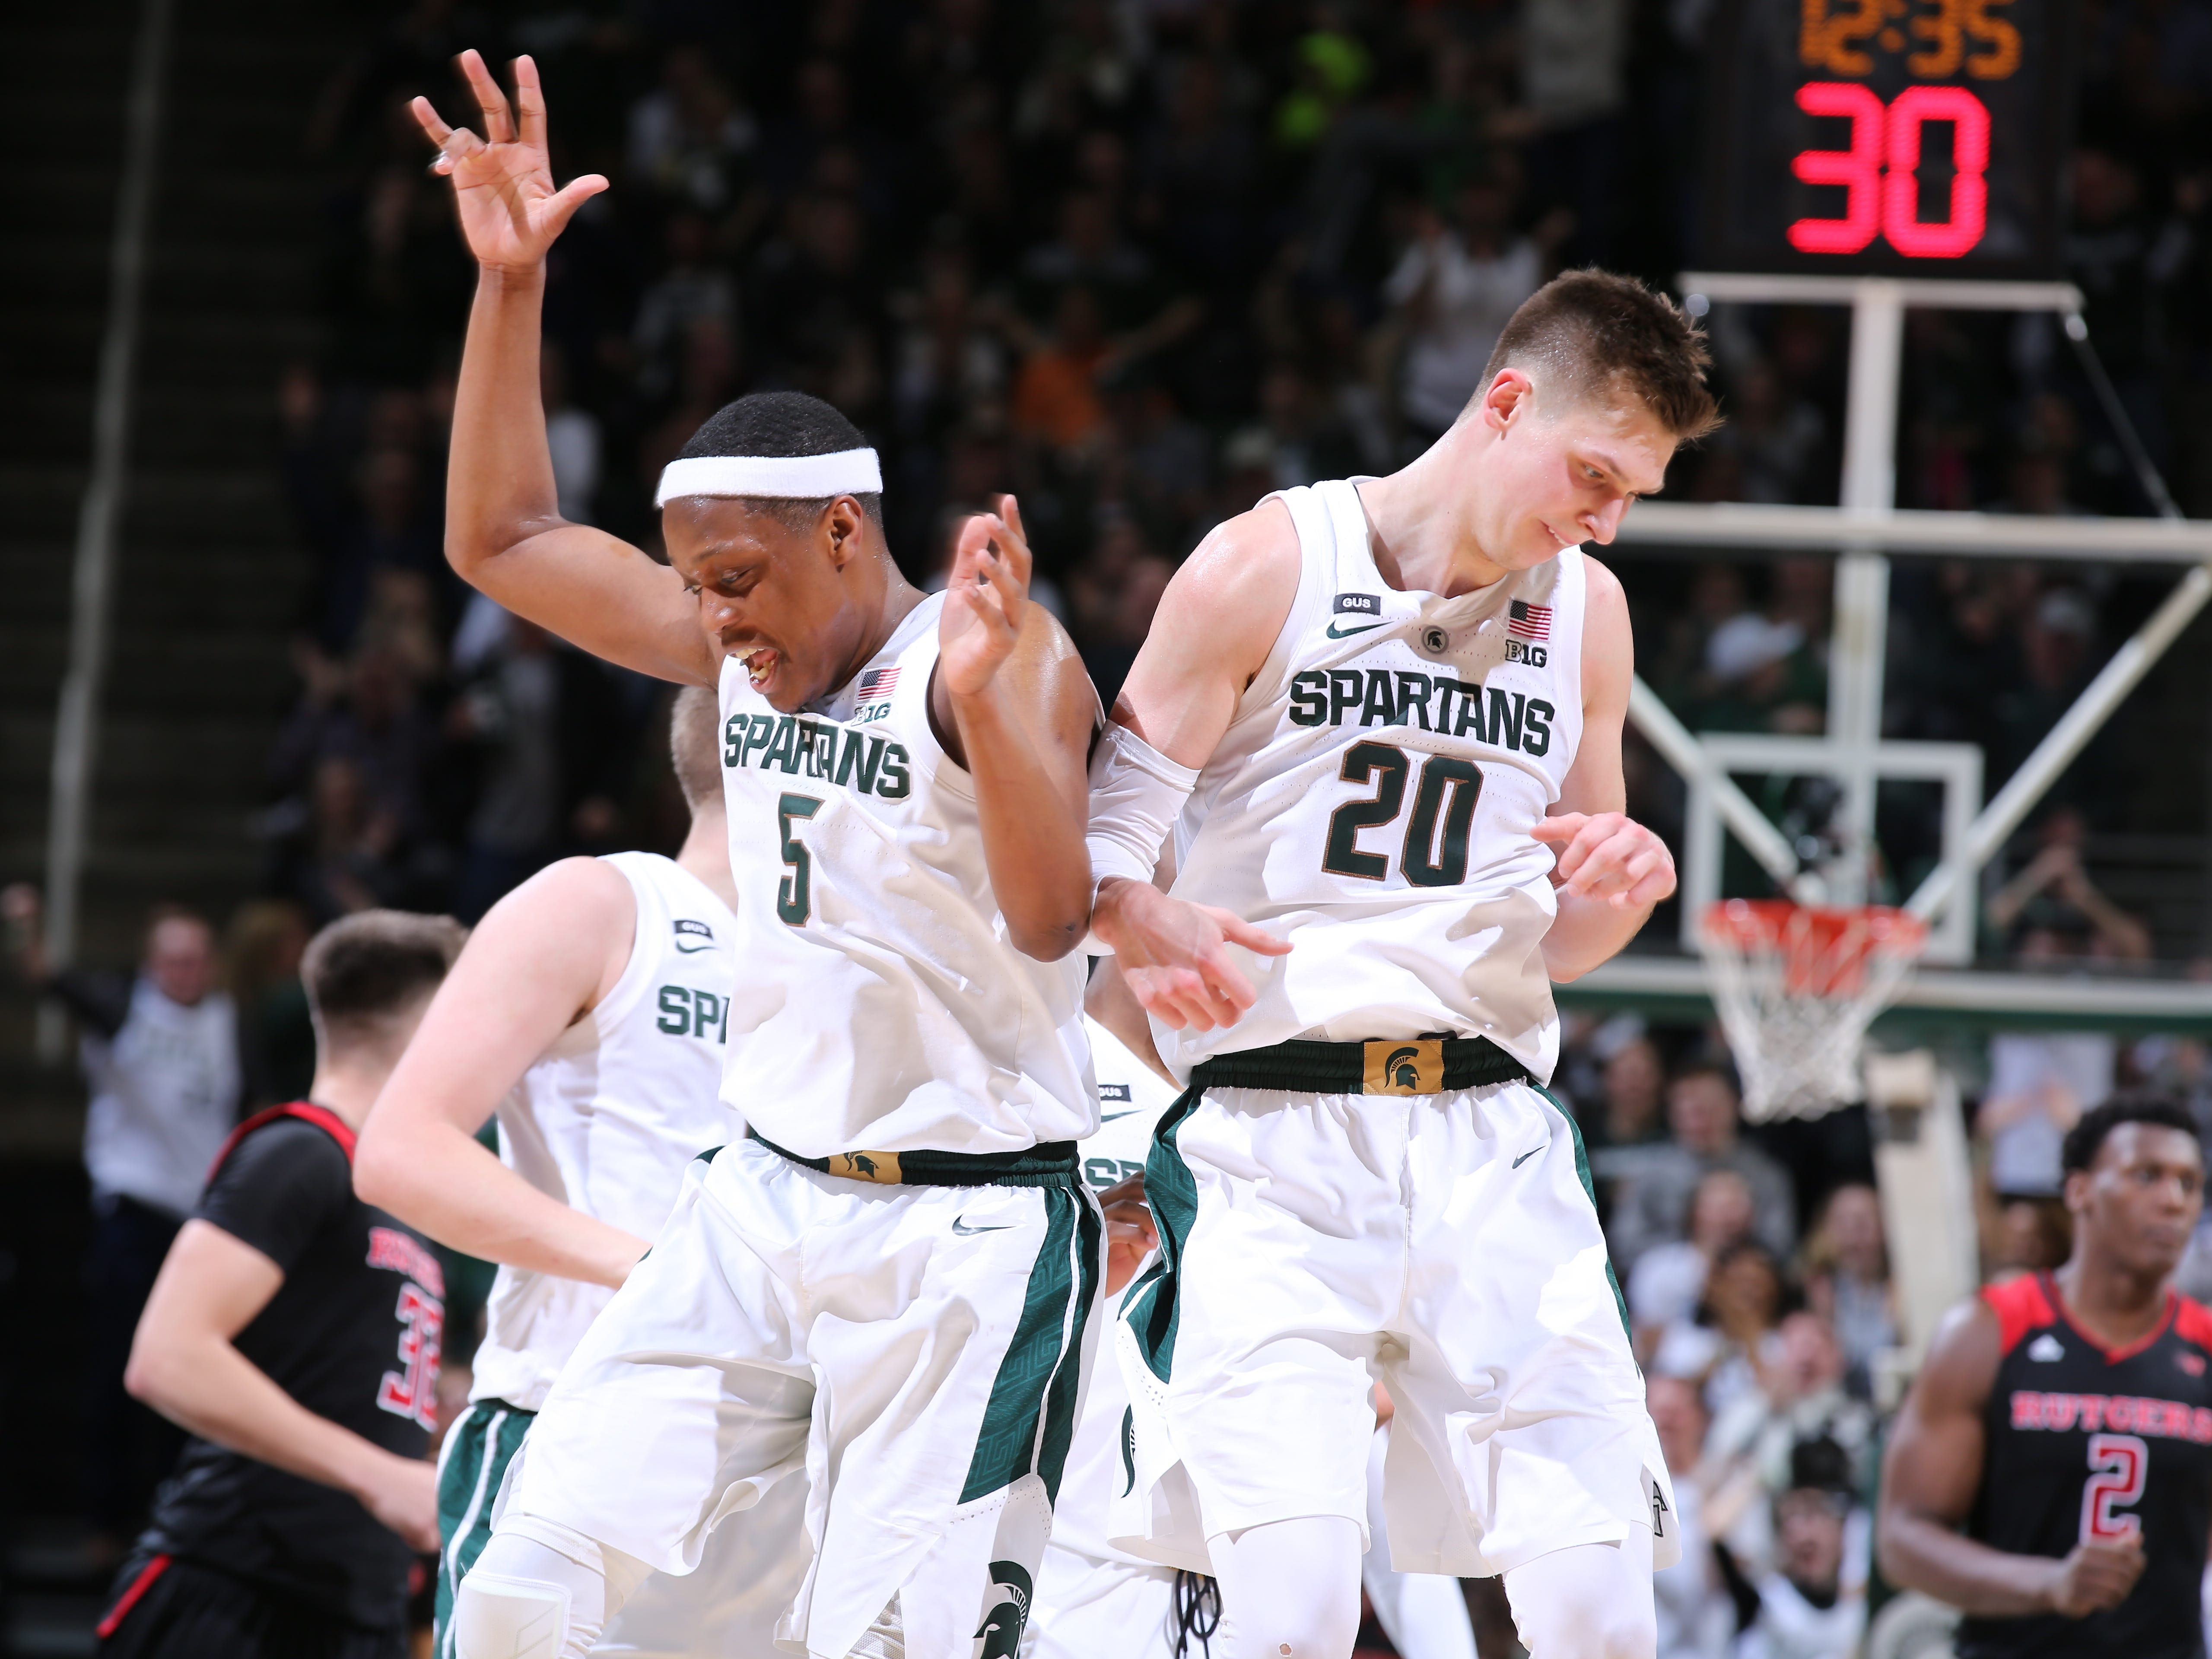 Matt McQuaid #20 of the Michigan State Spartans celebrates his three-point basket in the second half with teammate Cassius Winston #5 of the Michigan State Spartans against the Rutgers Scarlet Knights at Breslin Center on February 20, 2019 in East Lansing, Michigan.